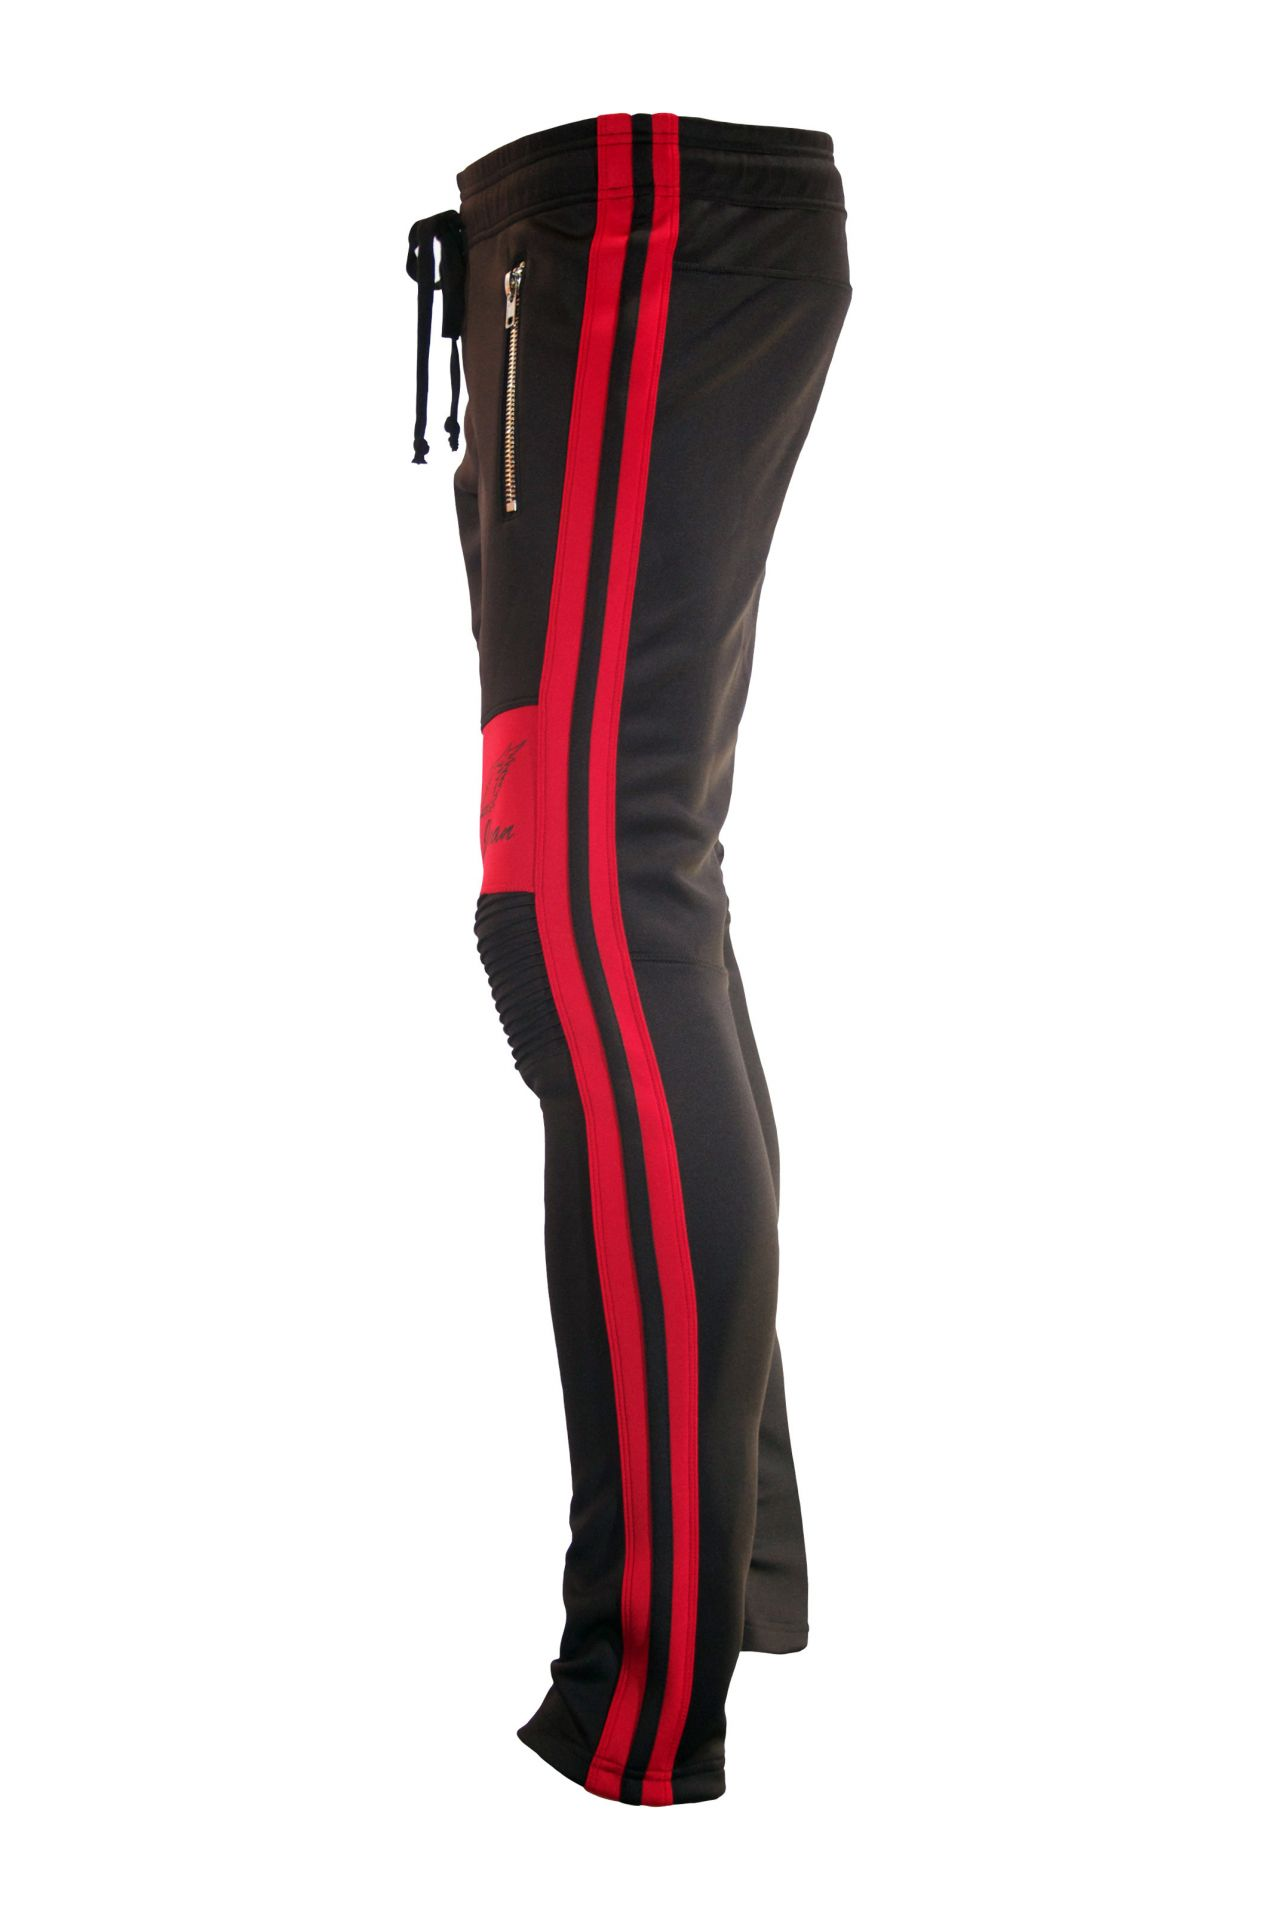 SIGNATURE  JOGGER IN BLACK WITH RED STRIPES